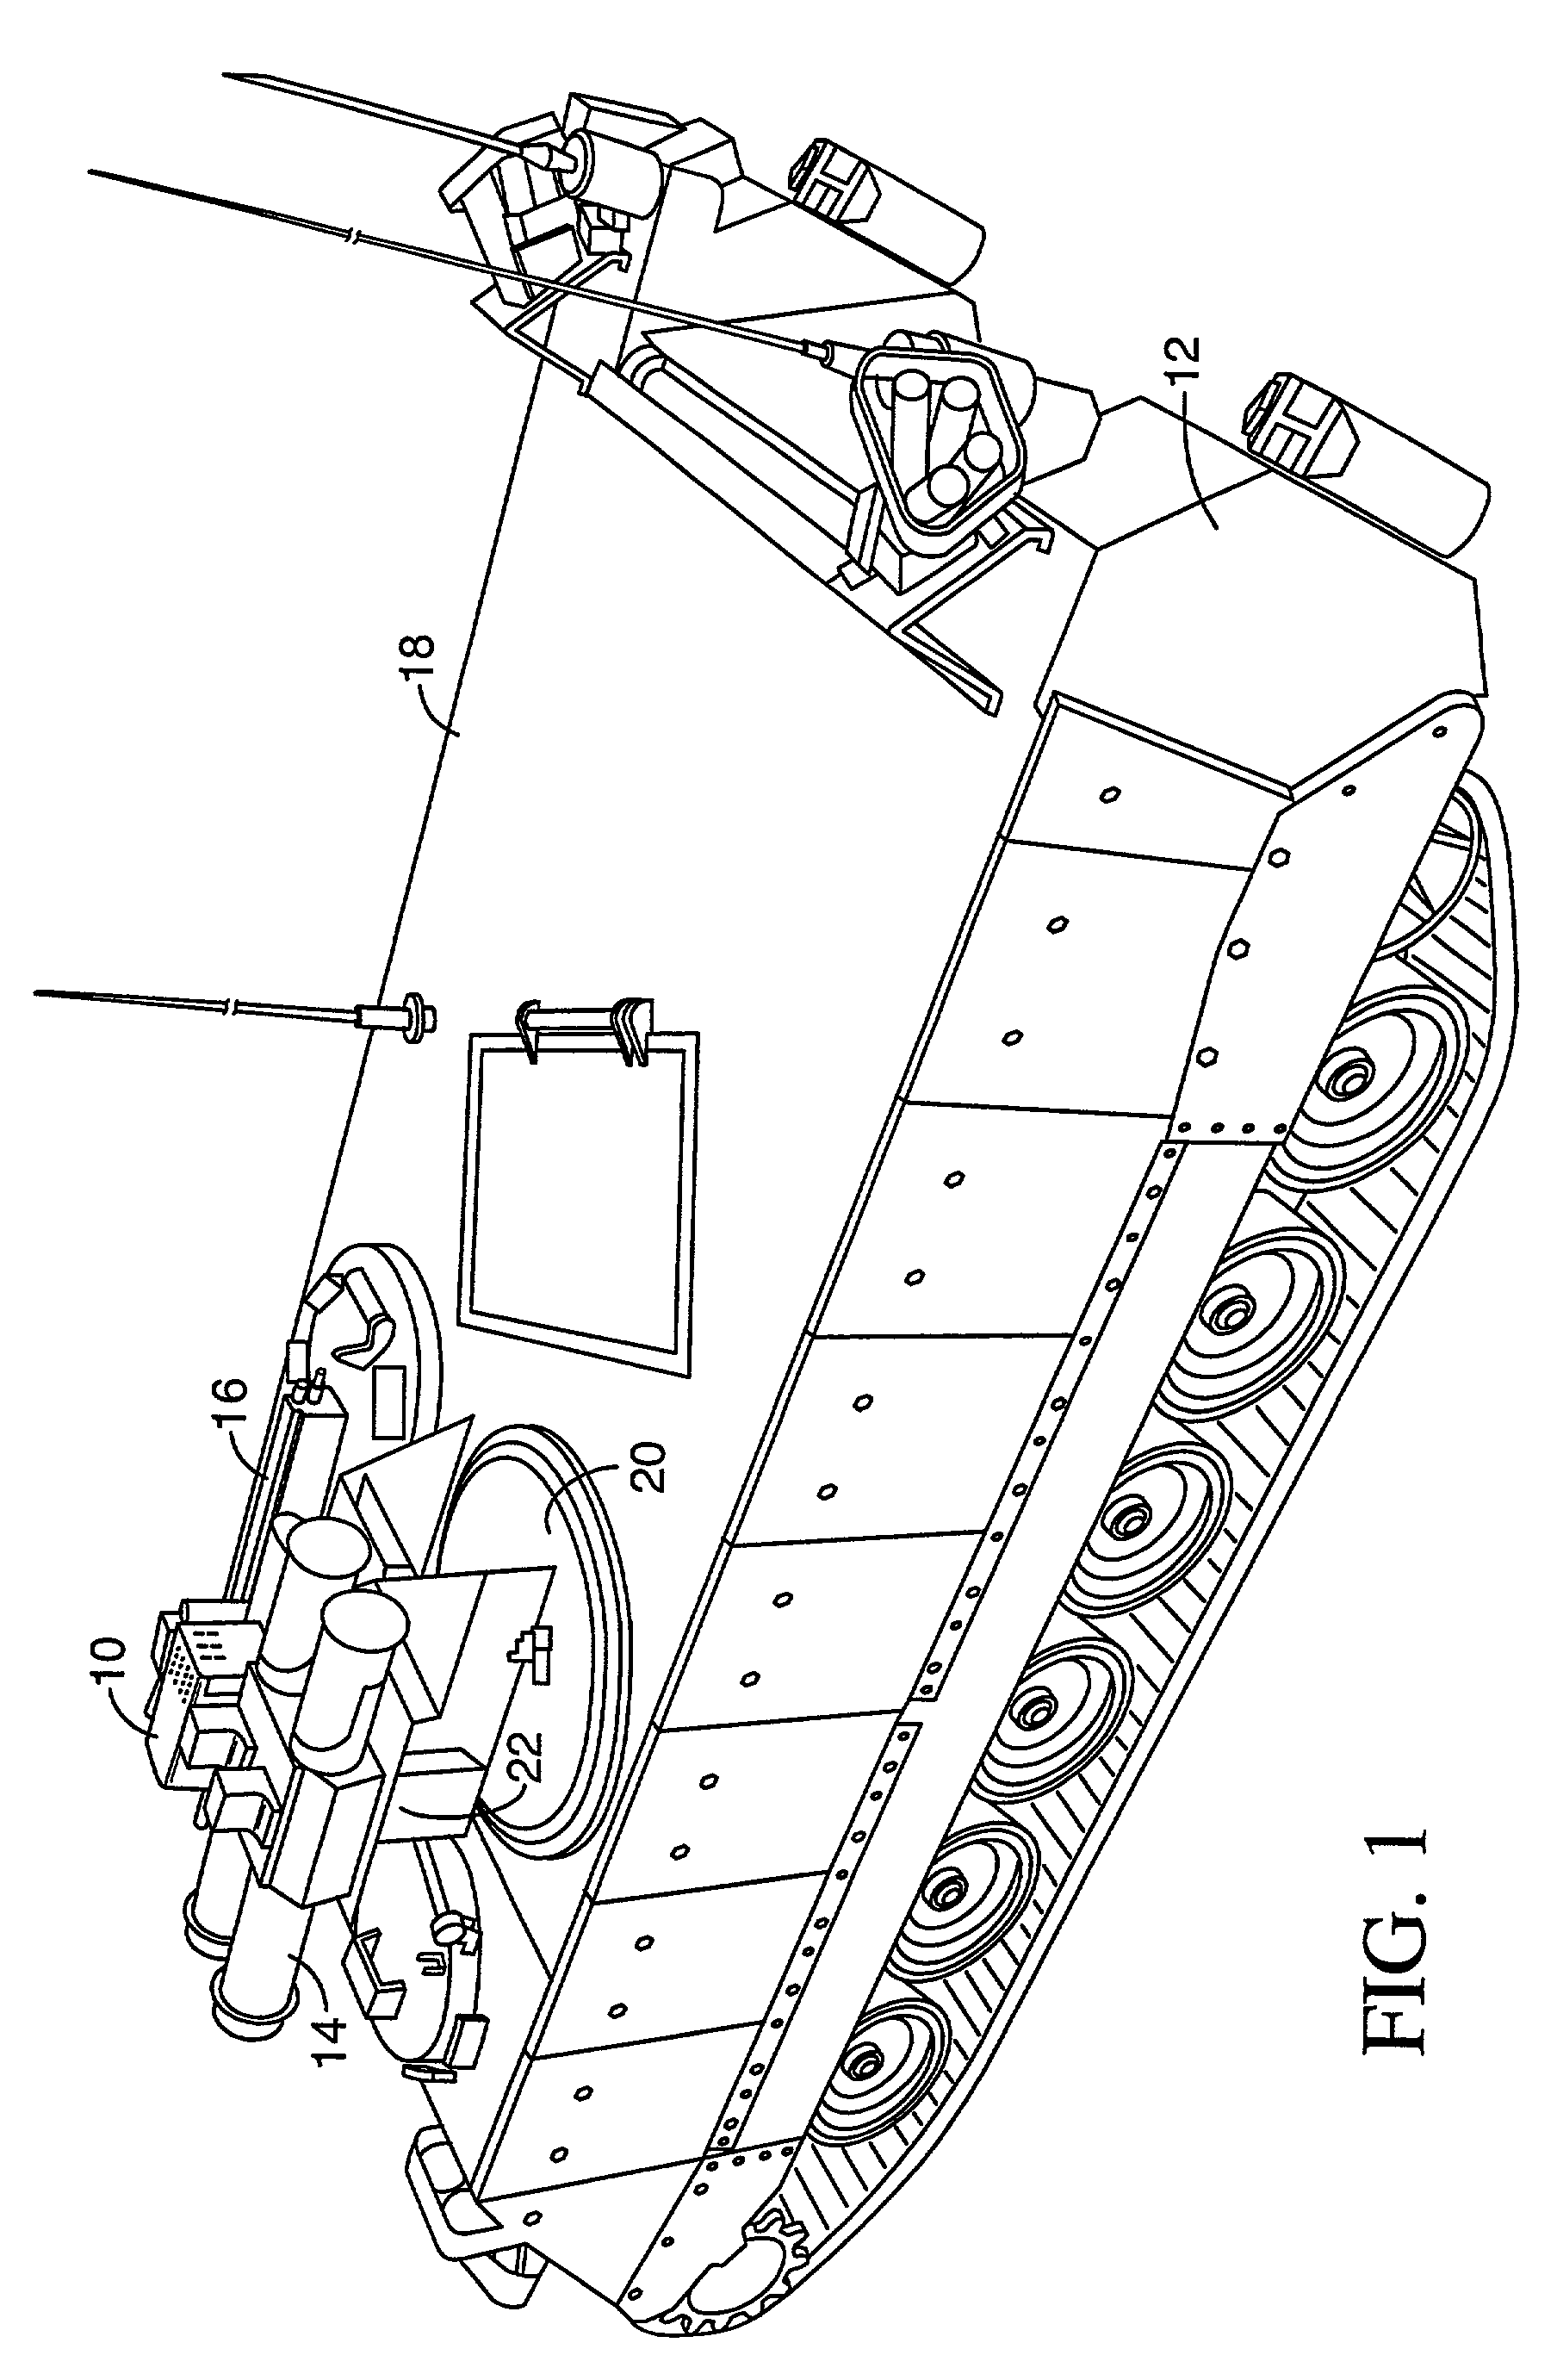 Missile Drawing Patent US708631...